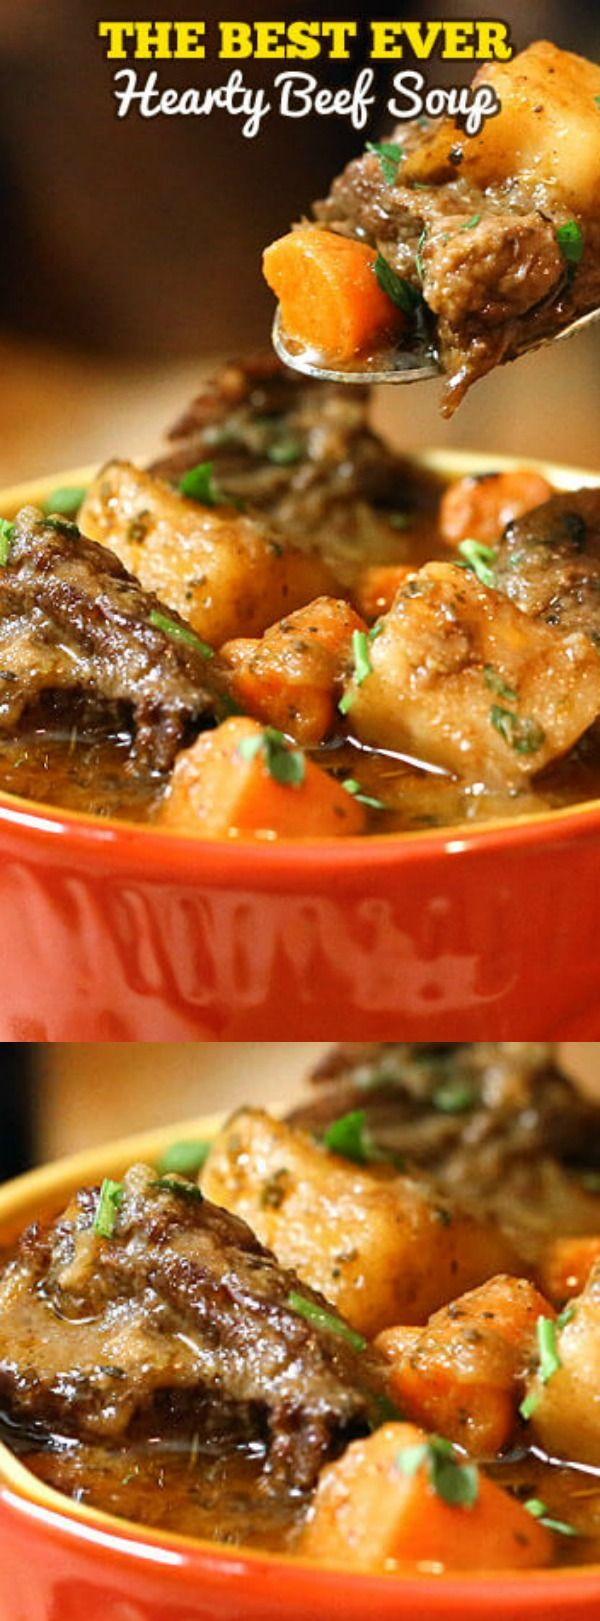 This Hearty Beef Soup Recipe from The Slow Roasted Italian has tender chunks of beef that will melt in your mouth! It is so incredibly rich and is loaded with vegetables making it the perfect chilly night comfort food.